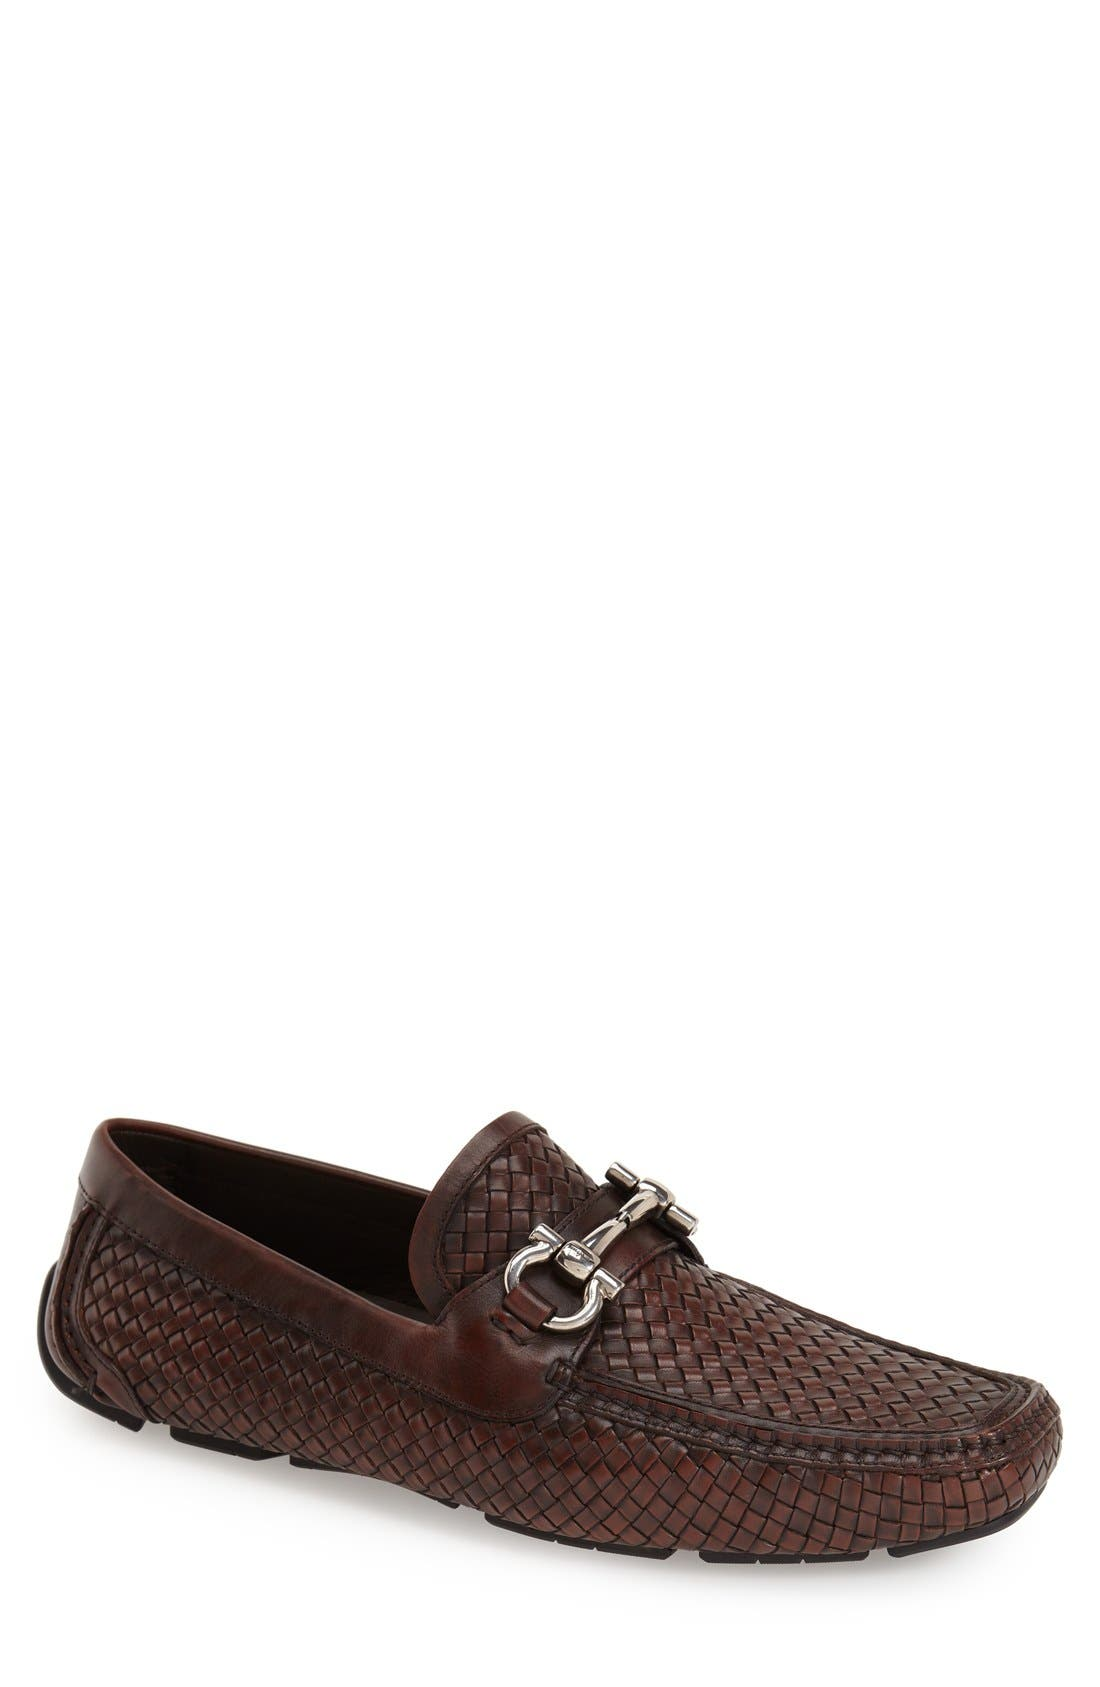 'Parigi' Woven Bit Loafer,                             Main thumbnail 1, color,                             202